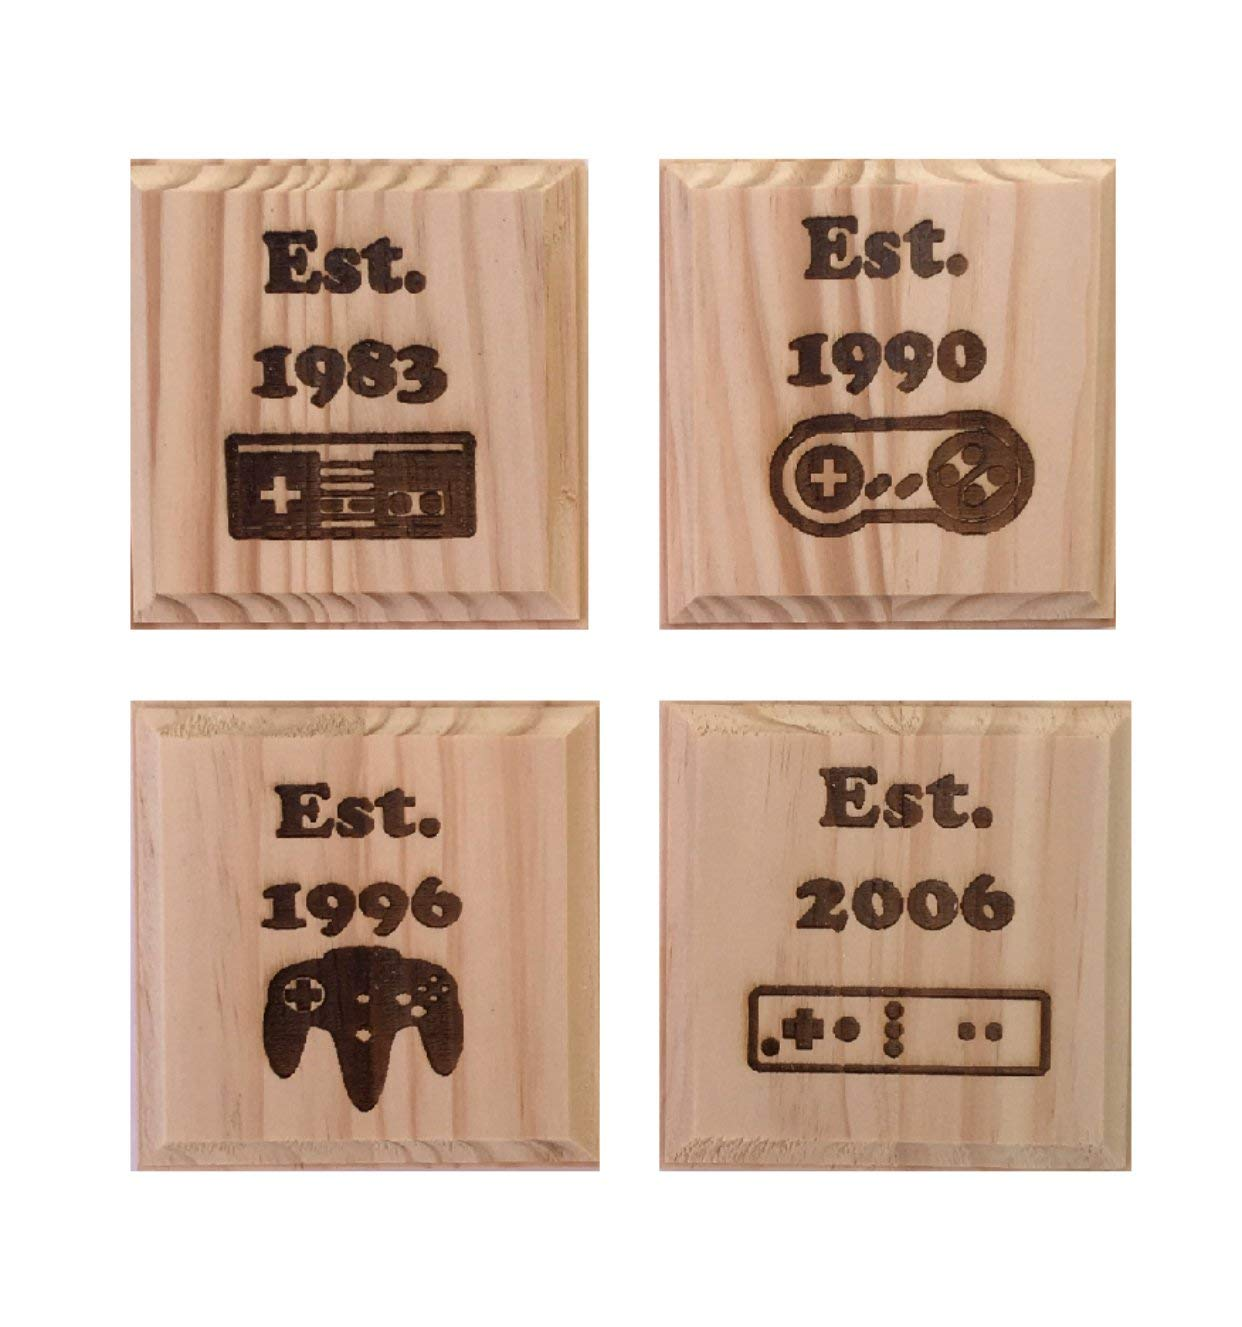 Gamer Controller Evolution Coasters - Engraved Gift Set of 4 Wood Drink Coasters (by Brindle Southern): Retro Console Gaming Controller, 8 Bit Classic, Gamer Gift Father's Day, Dads